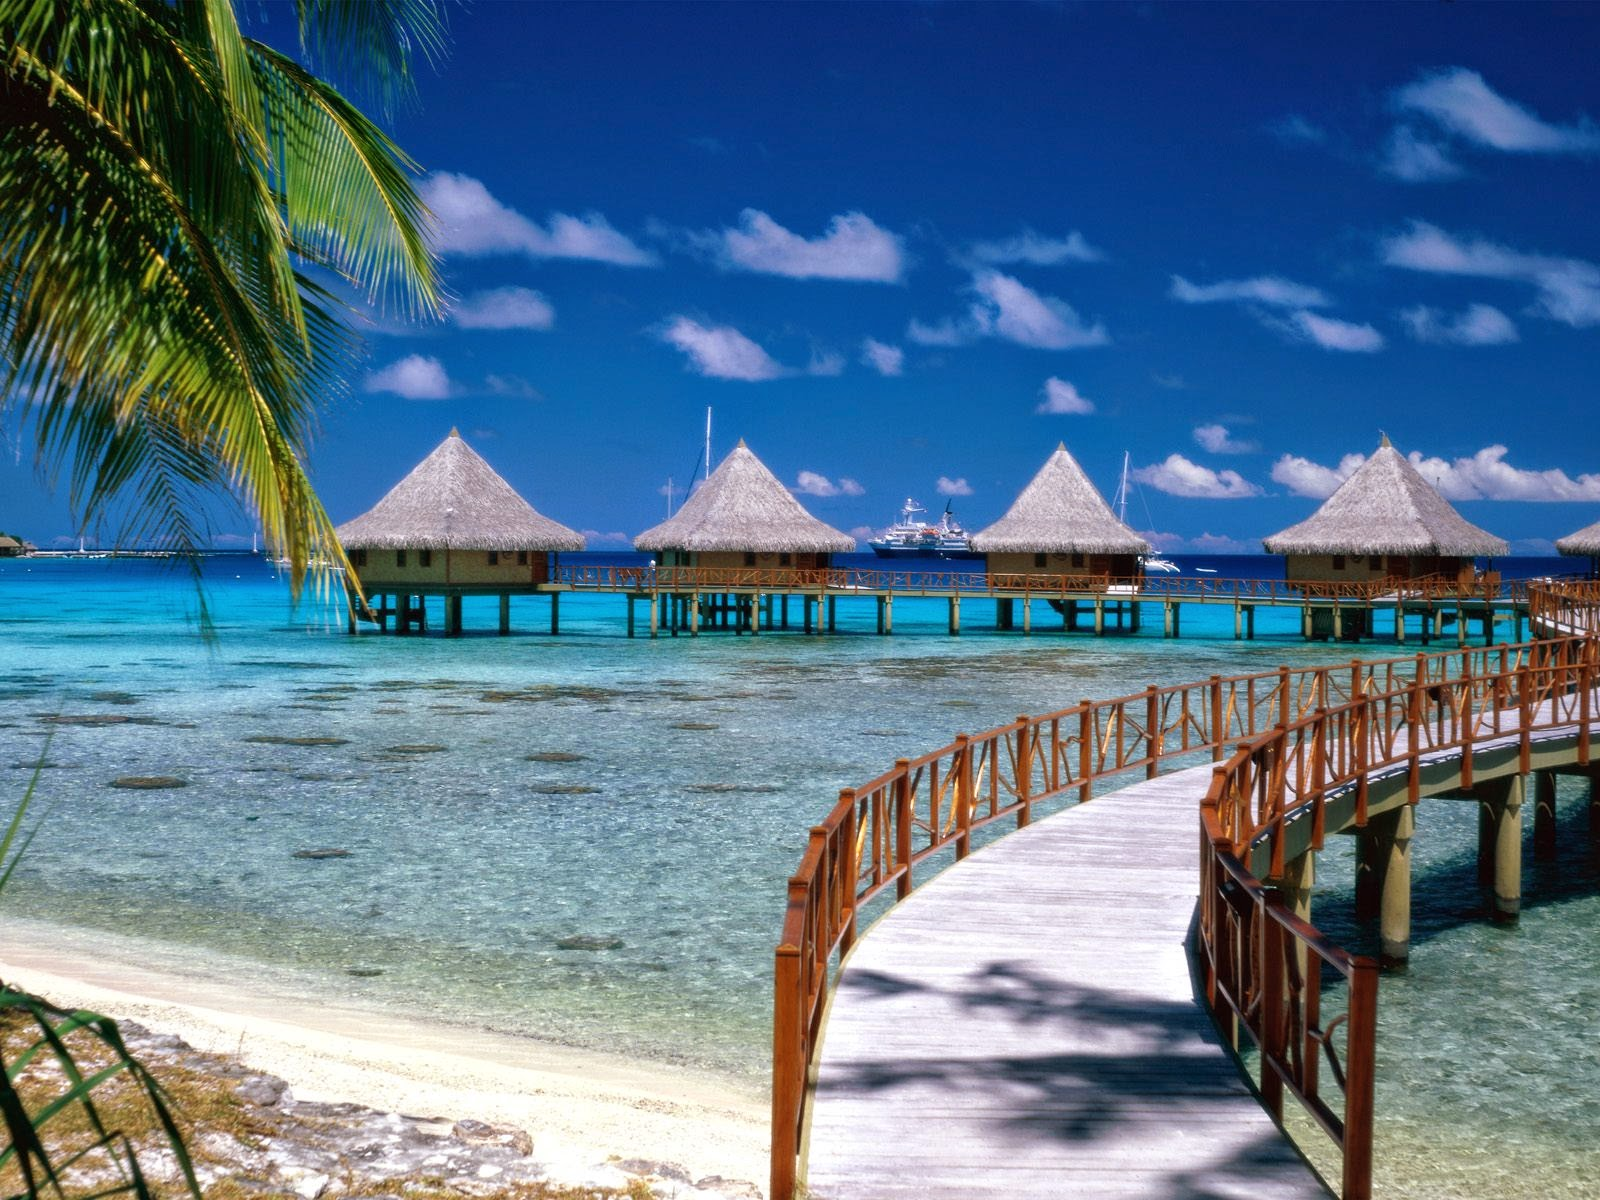 Walkway to Paradise French Polynesia Your Wallpaper - walkway to paradise french polynesia wallpapers